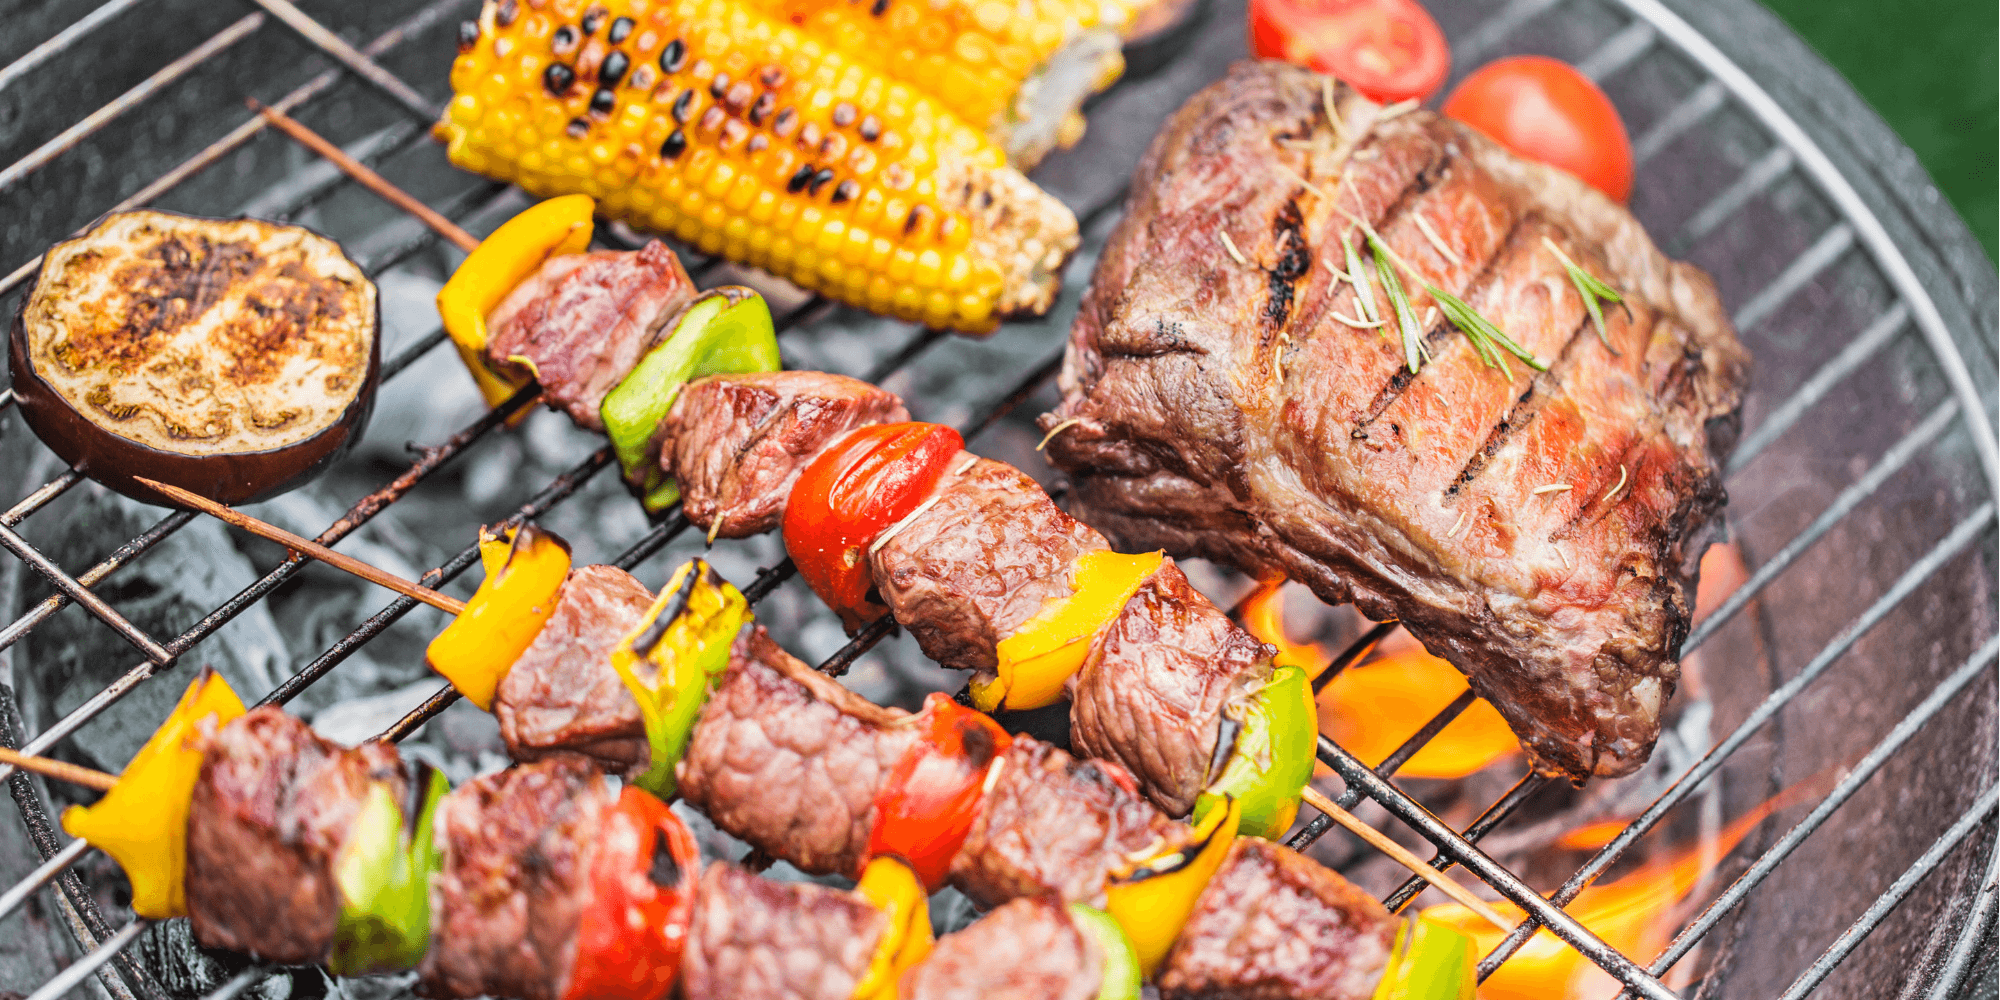 Food on the grill at a BBQ